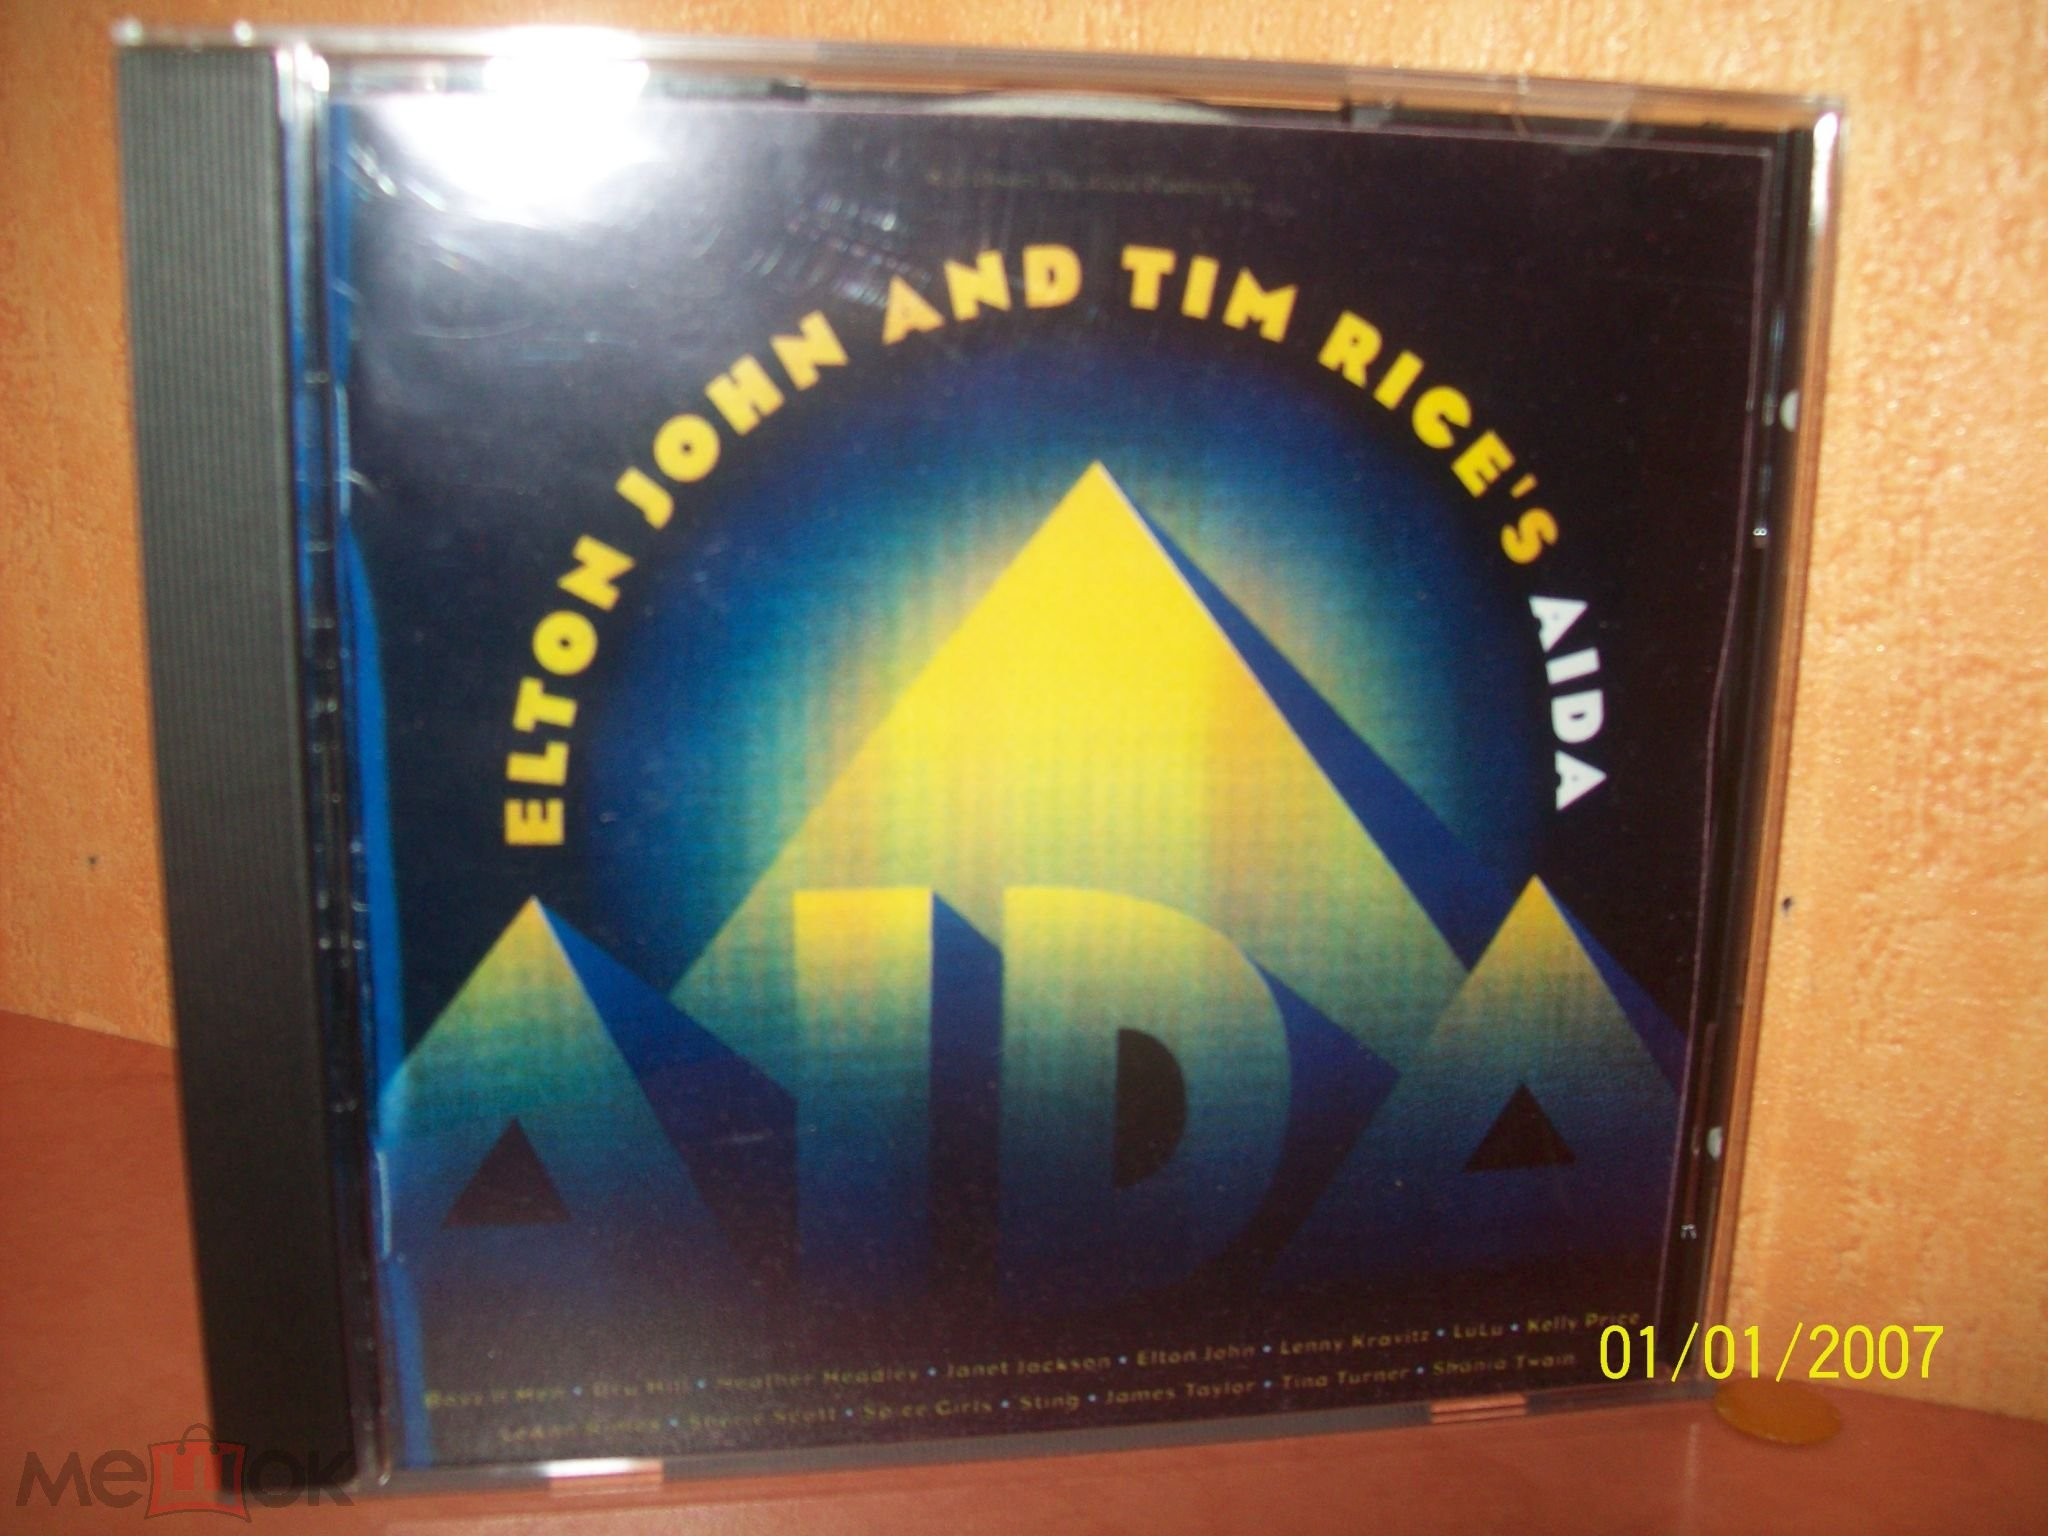 Elton John And Tim Rice - Aida (Rocket - 524 651-2) Unofficial Release Russia 1999